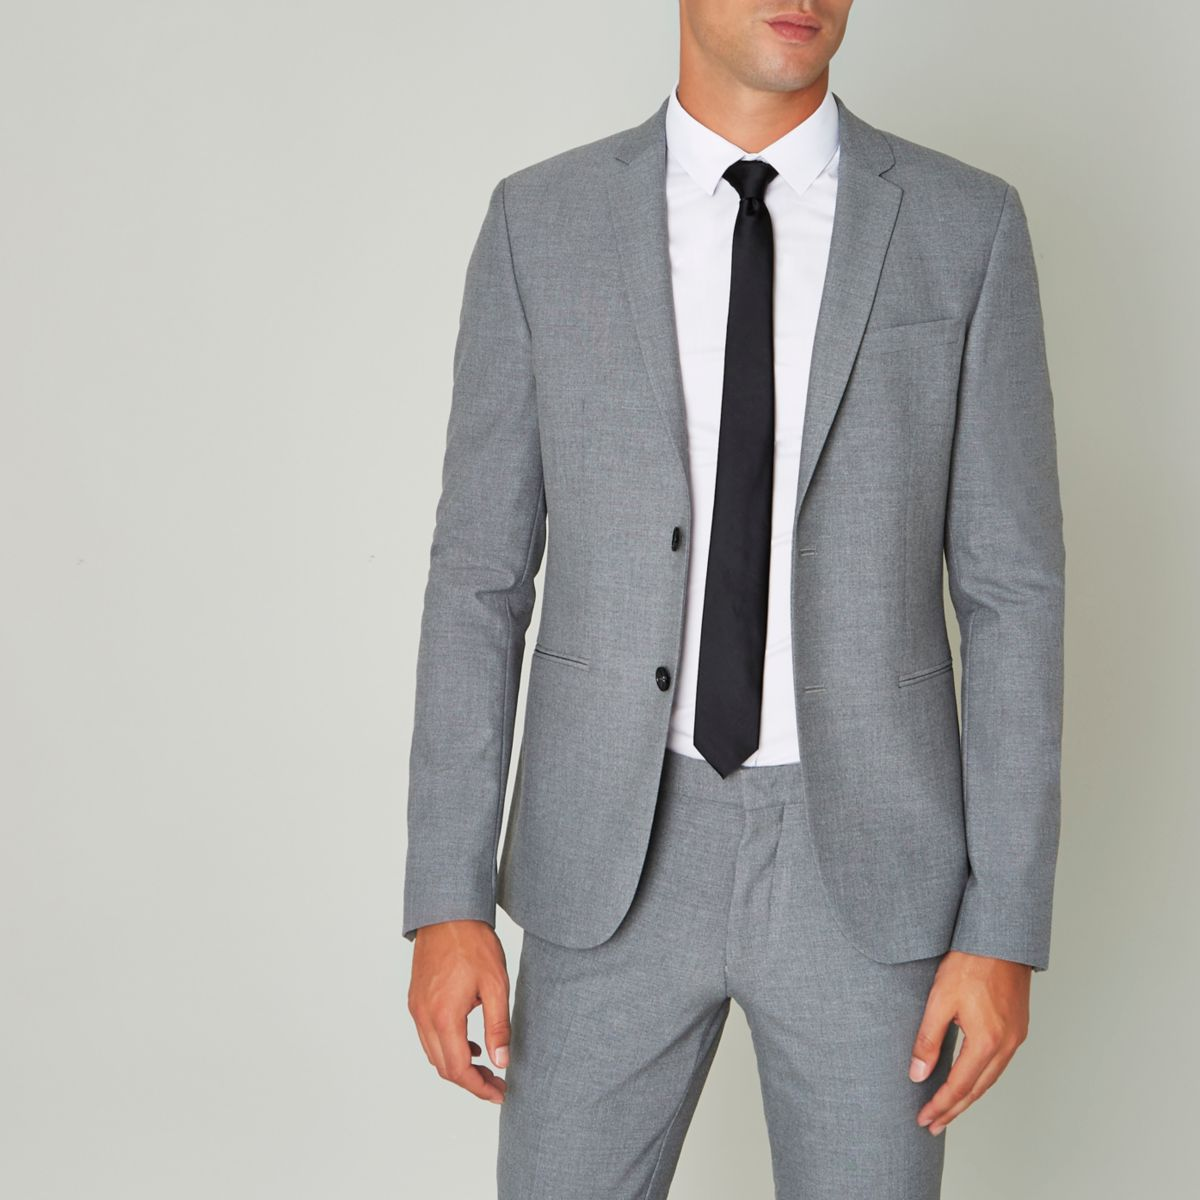 Grey Super Skinny Fit Suit Jacket by River Island